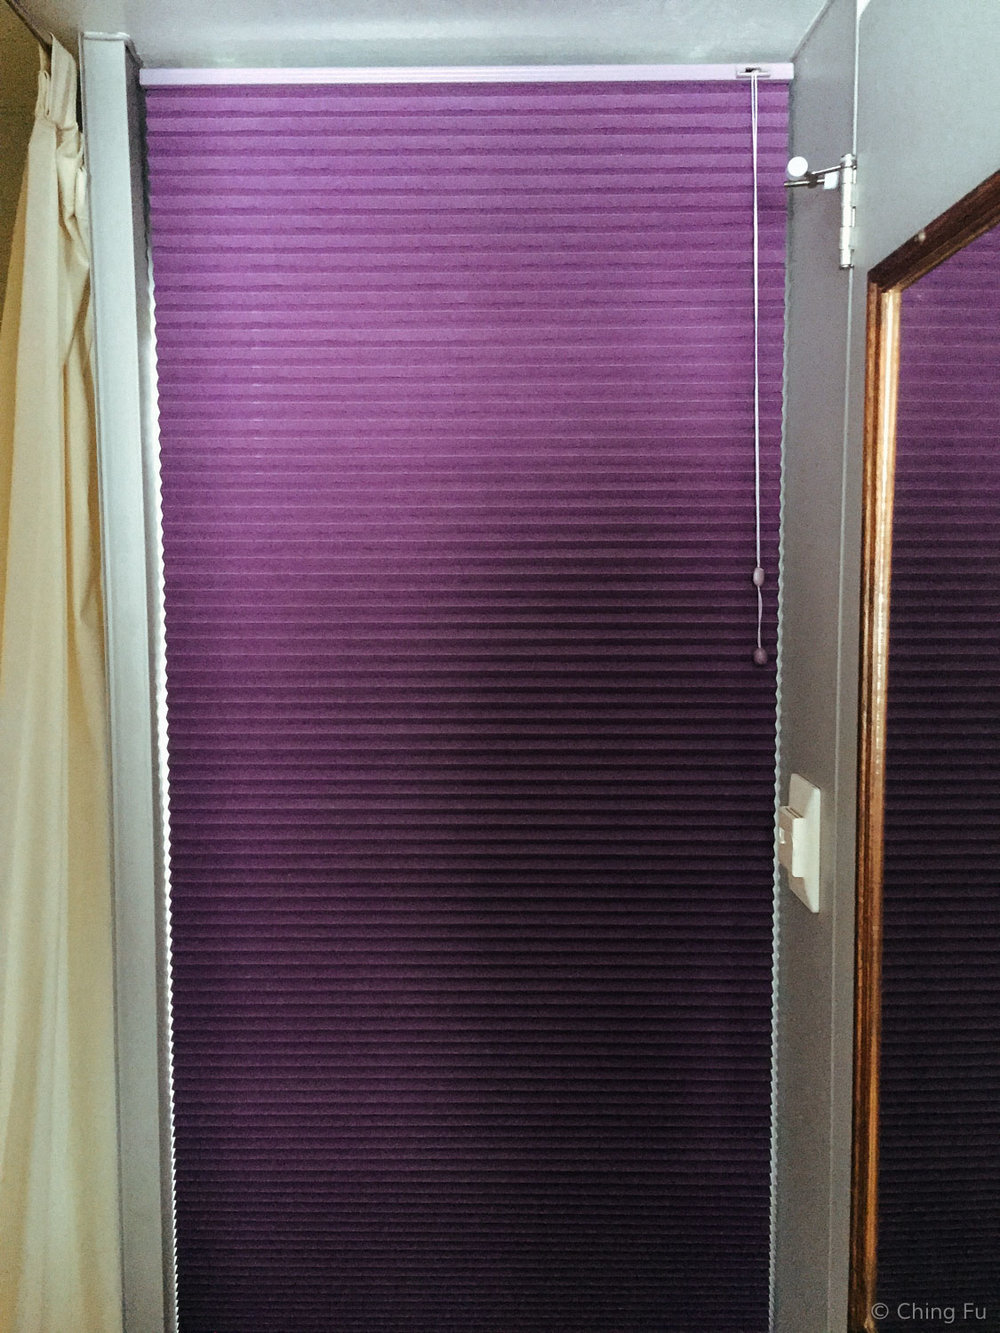 Cellular window blind used as a door.